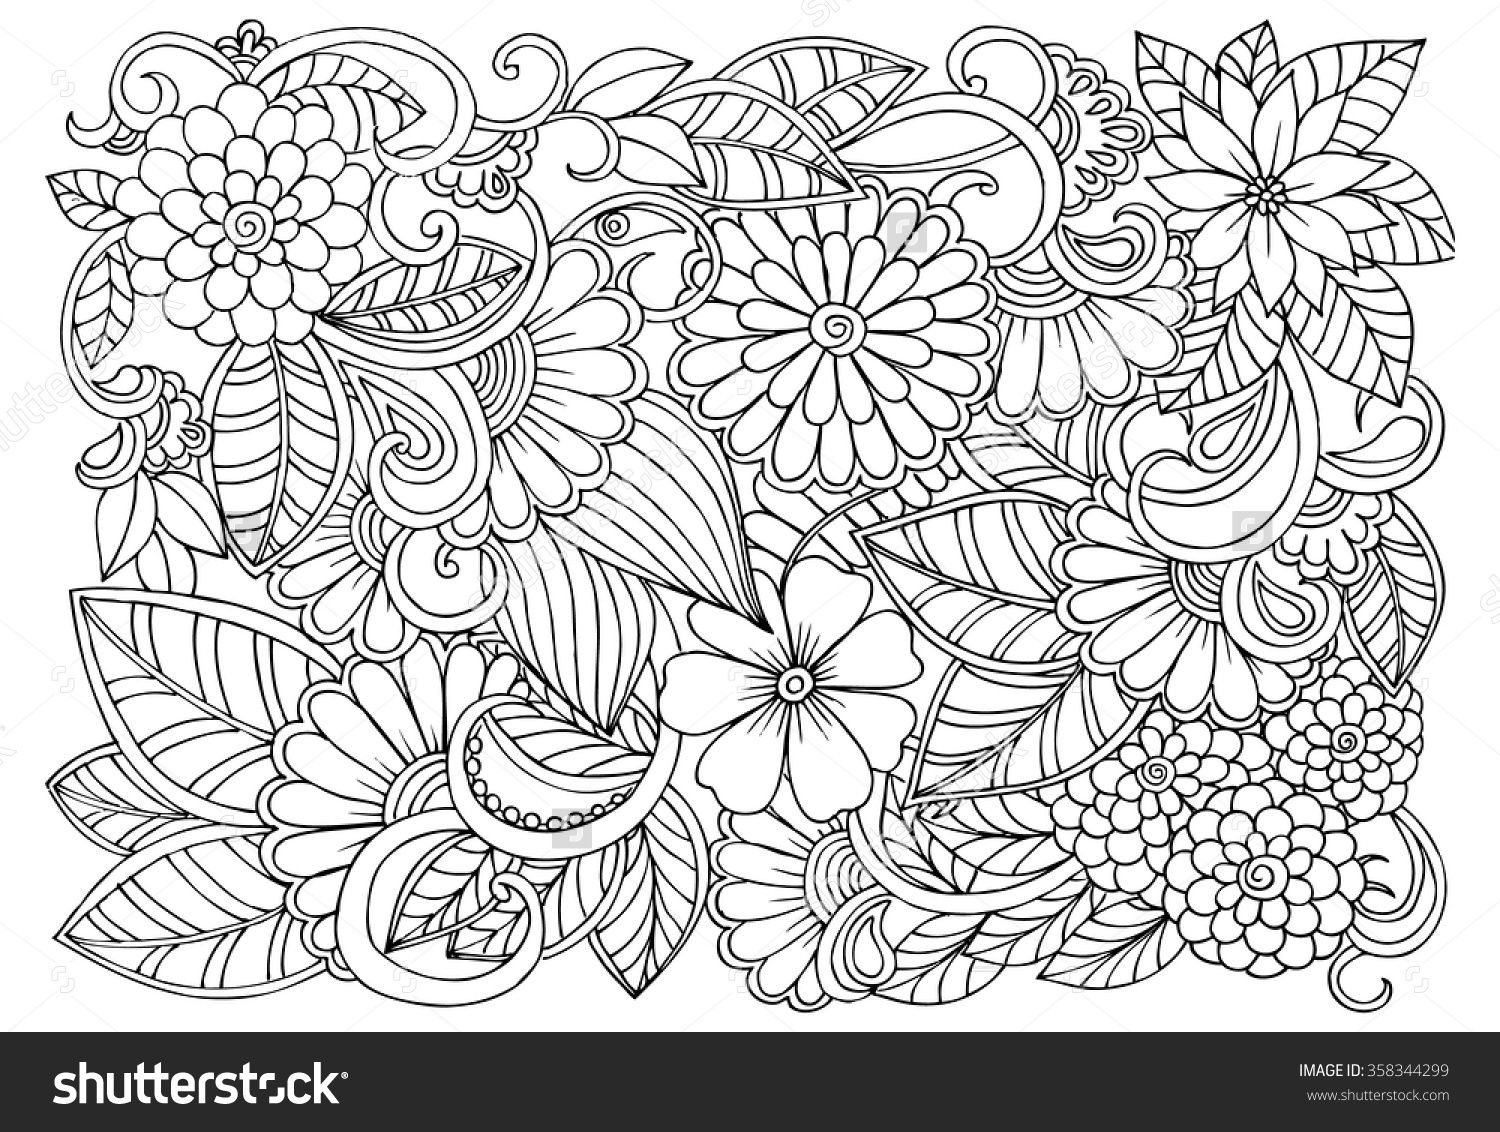 Uncategorized Black And White Coloring Pictures coloring pages of flower designs with doodle floral pattern in black and white color print 5 32750